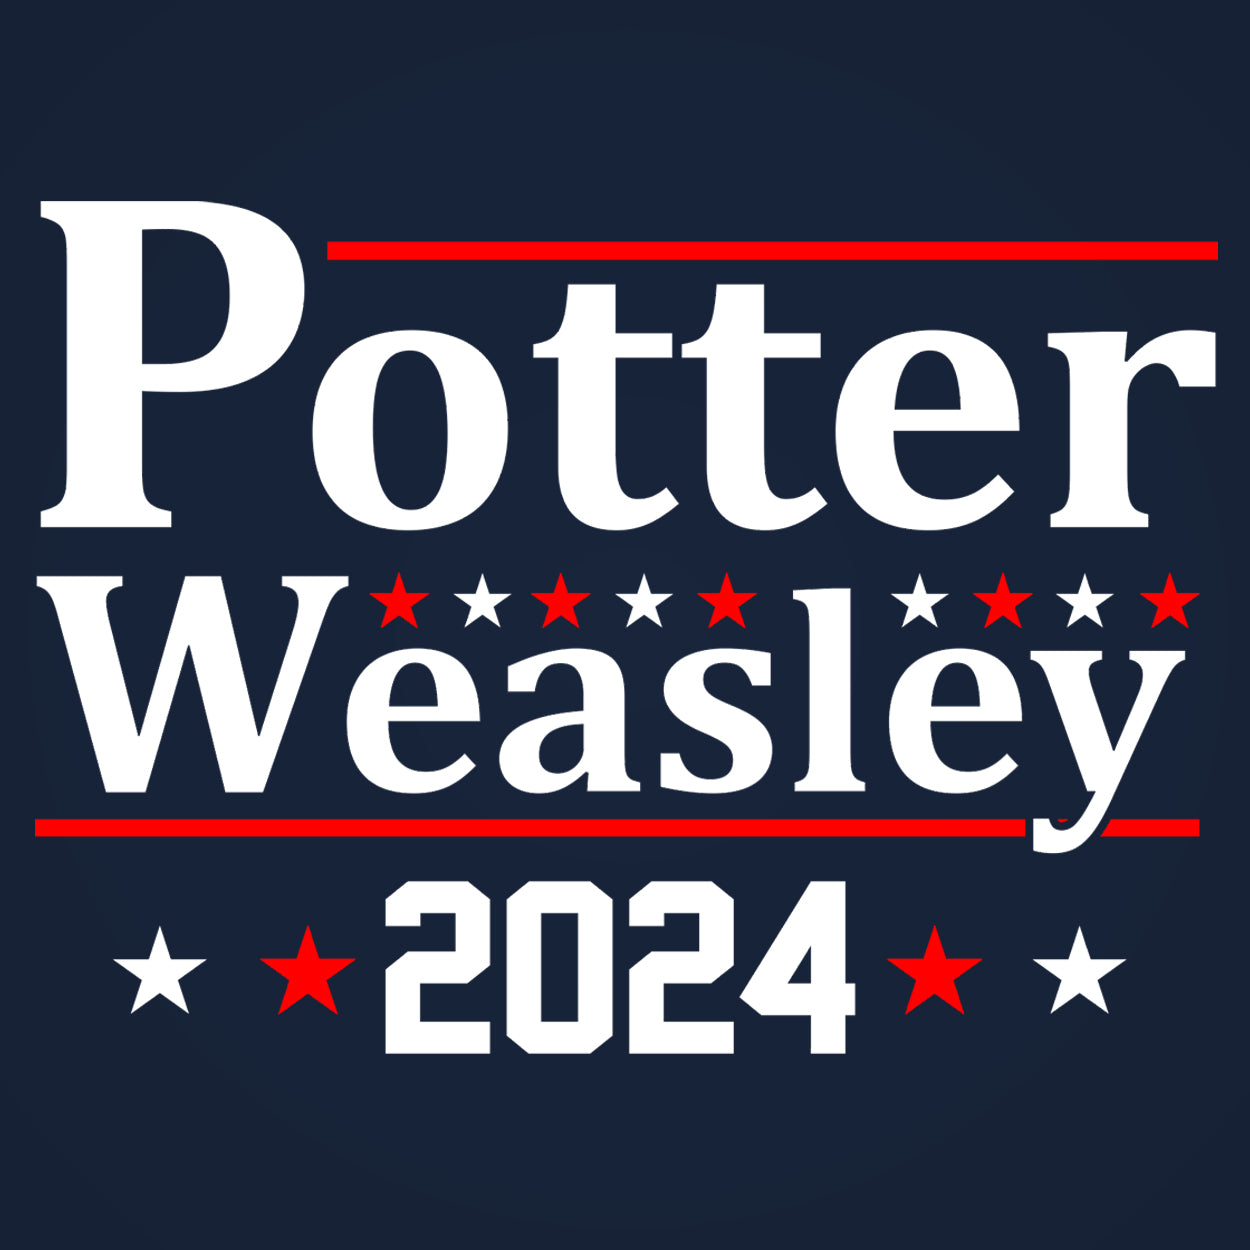 Potter Weasley 2024 Election